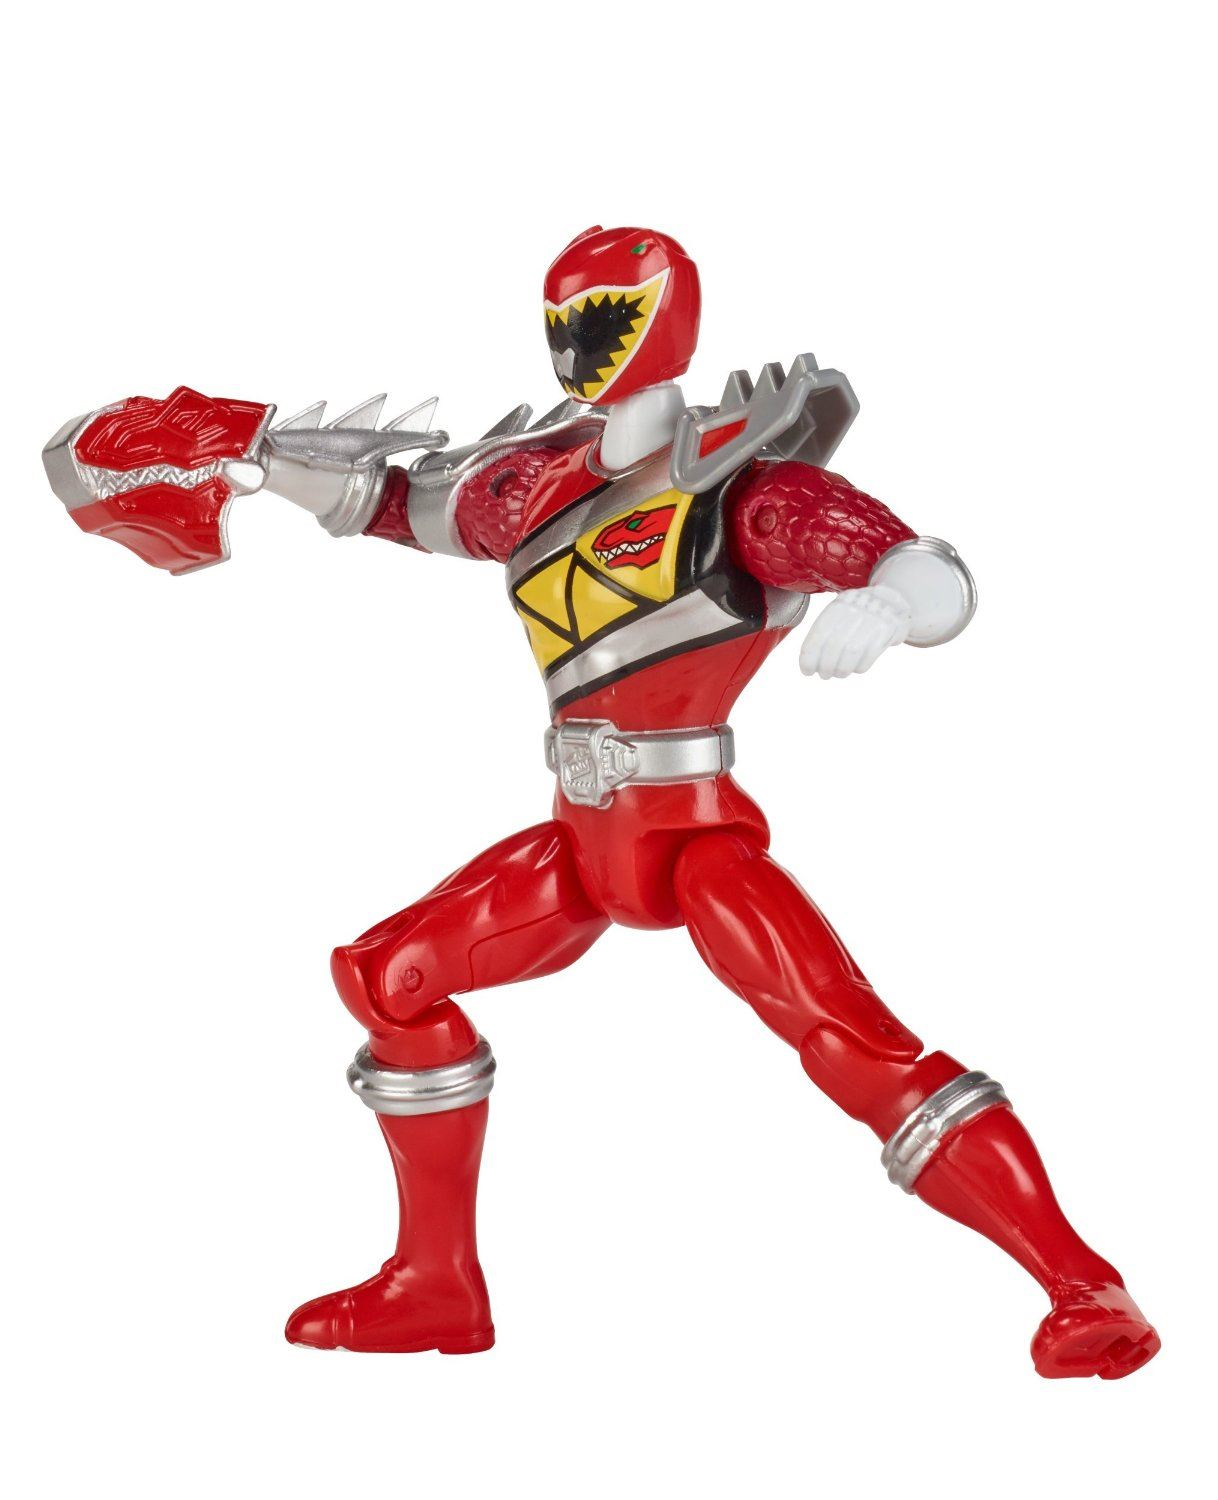 dino charge power rangers action figures battle gear ebay. Black Bedroom Furniture Sets. Home Design Ideas